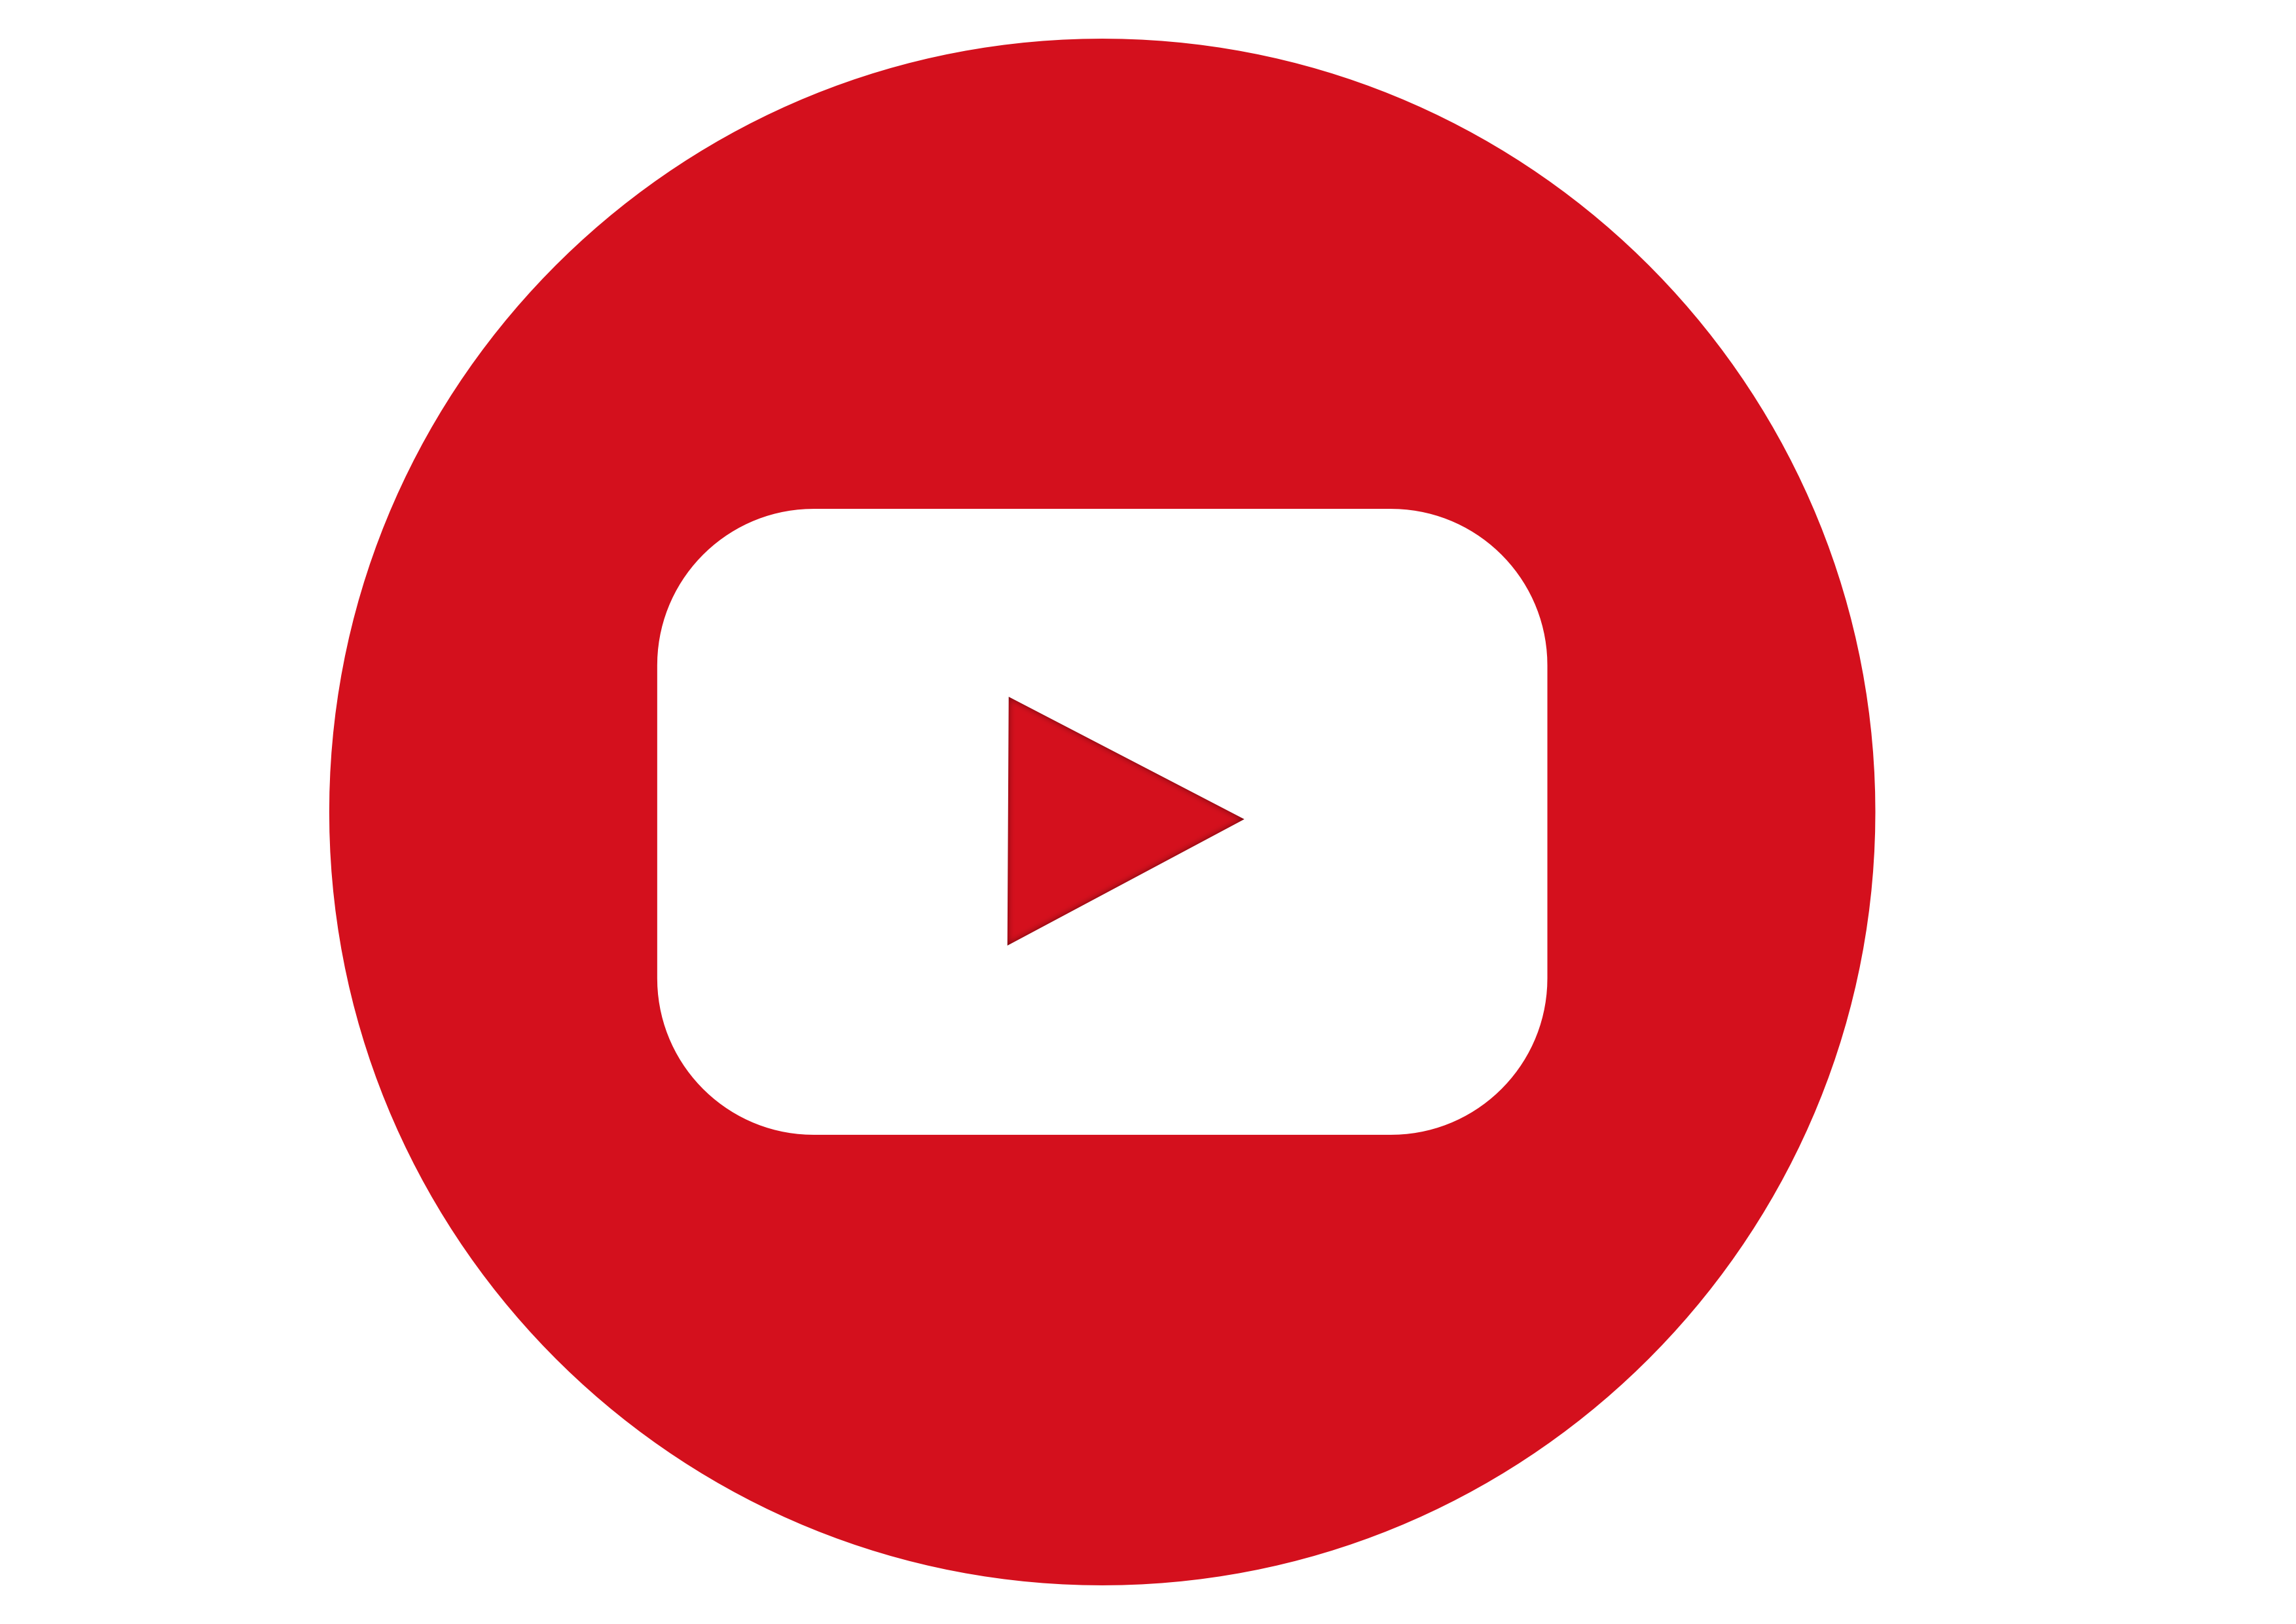 Youtube logo icon transparent #2092 - Free Transparent PNG Logos ...